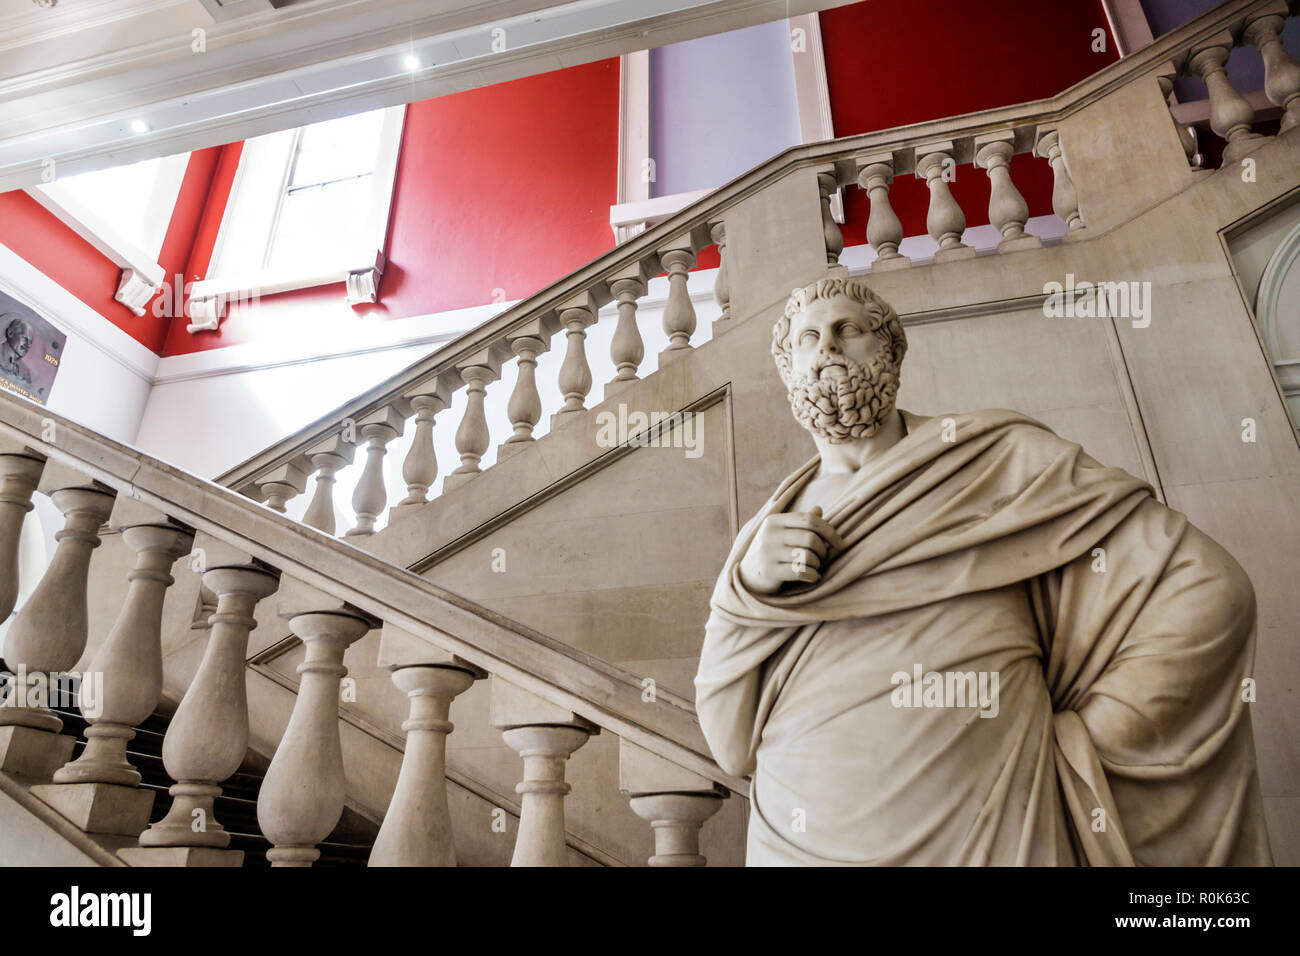 London England United Kingdom Great Britain Covent Garden Strand King's College King's Building campus public research university foyer stairs Sophocl - Stock Image